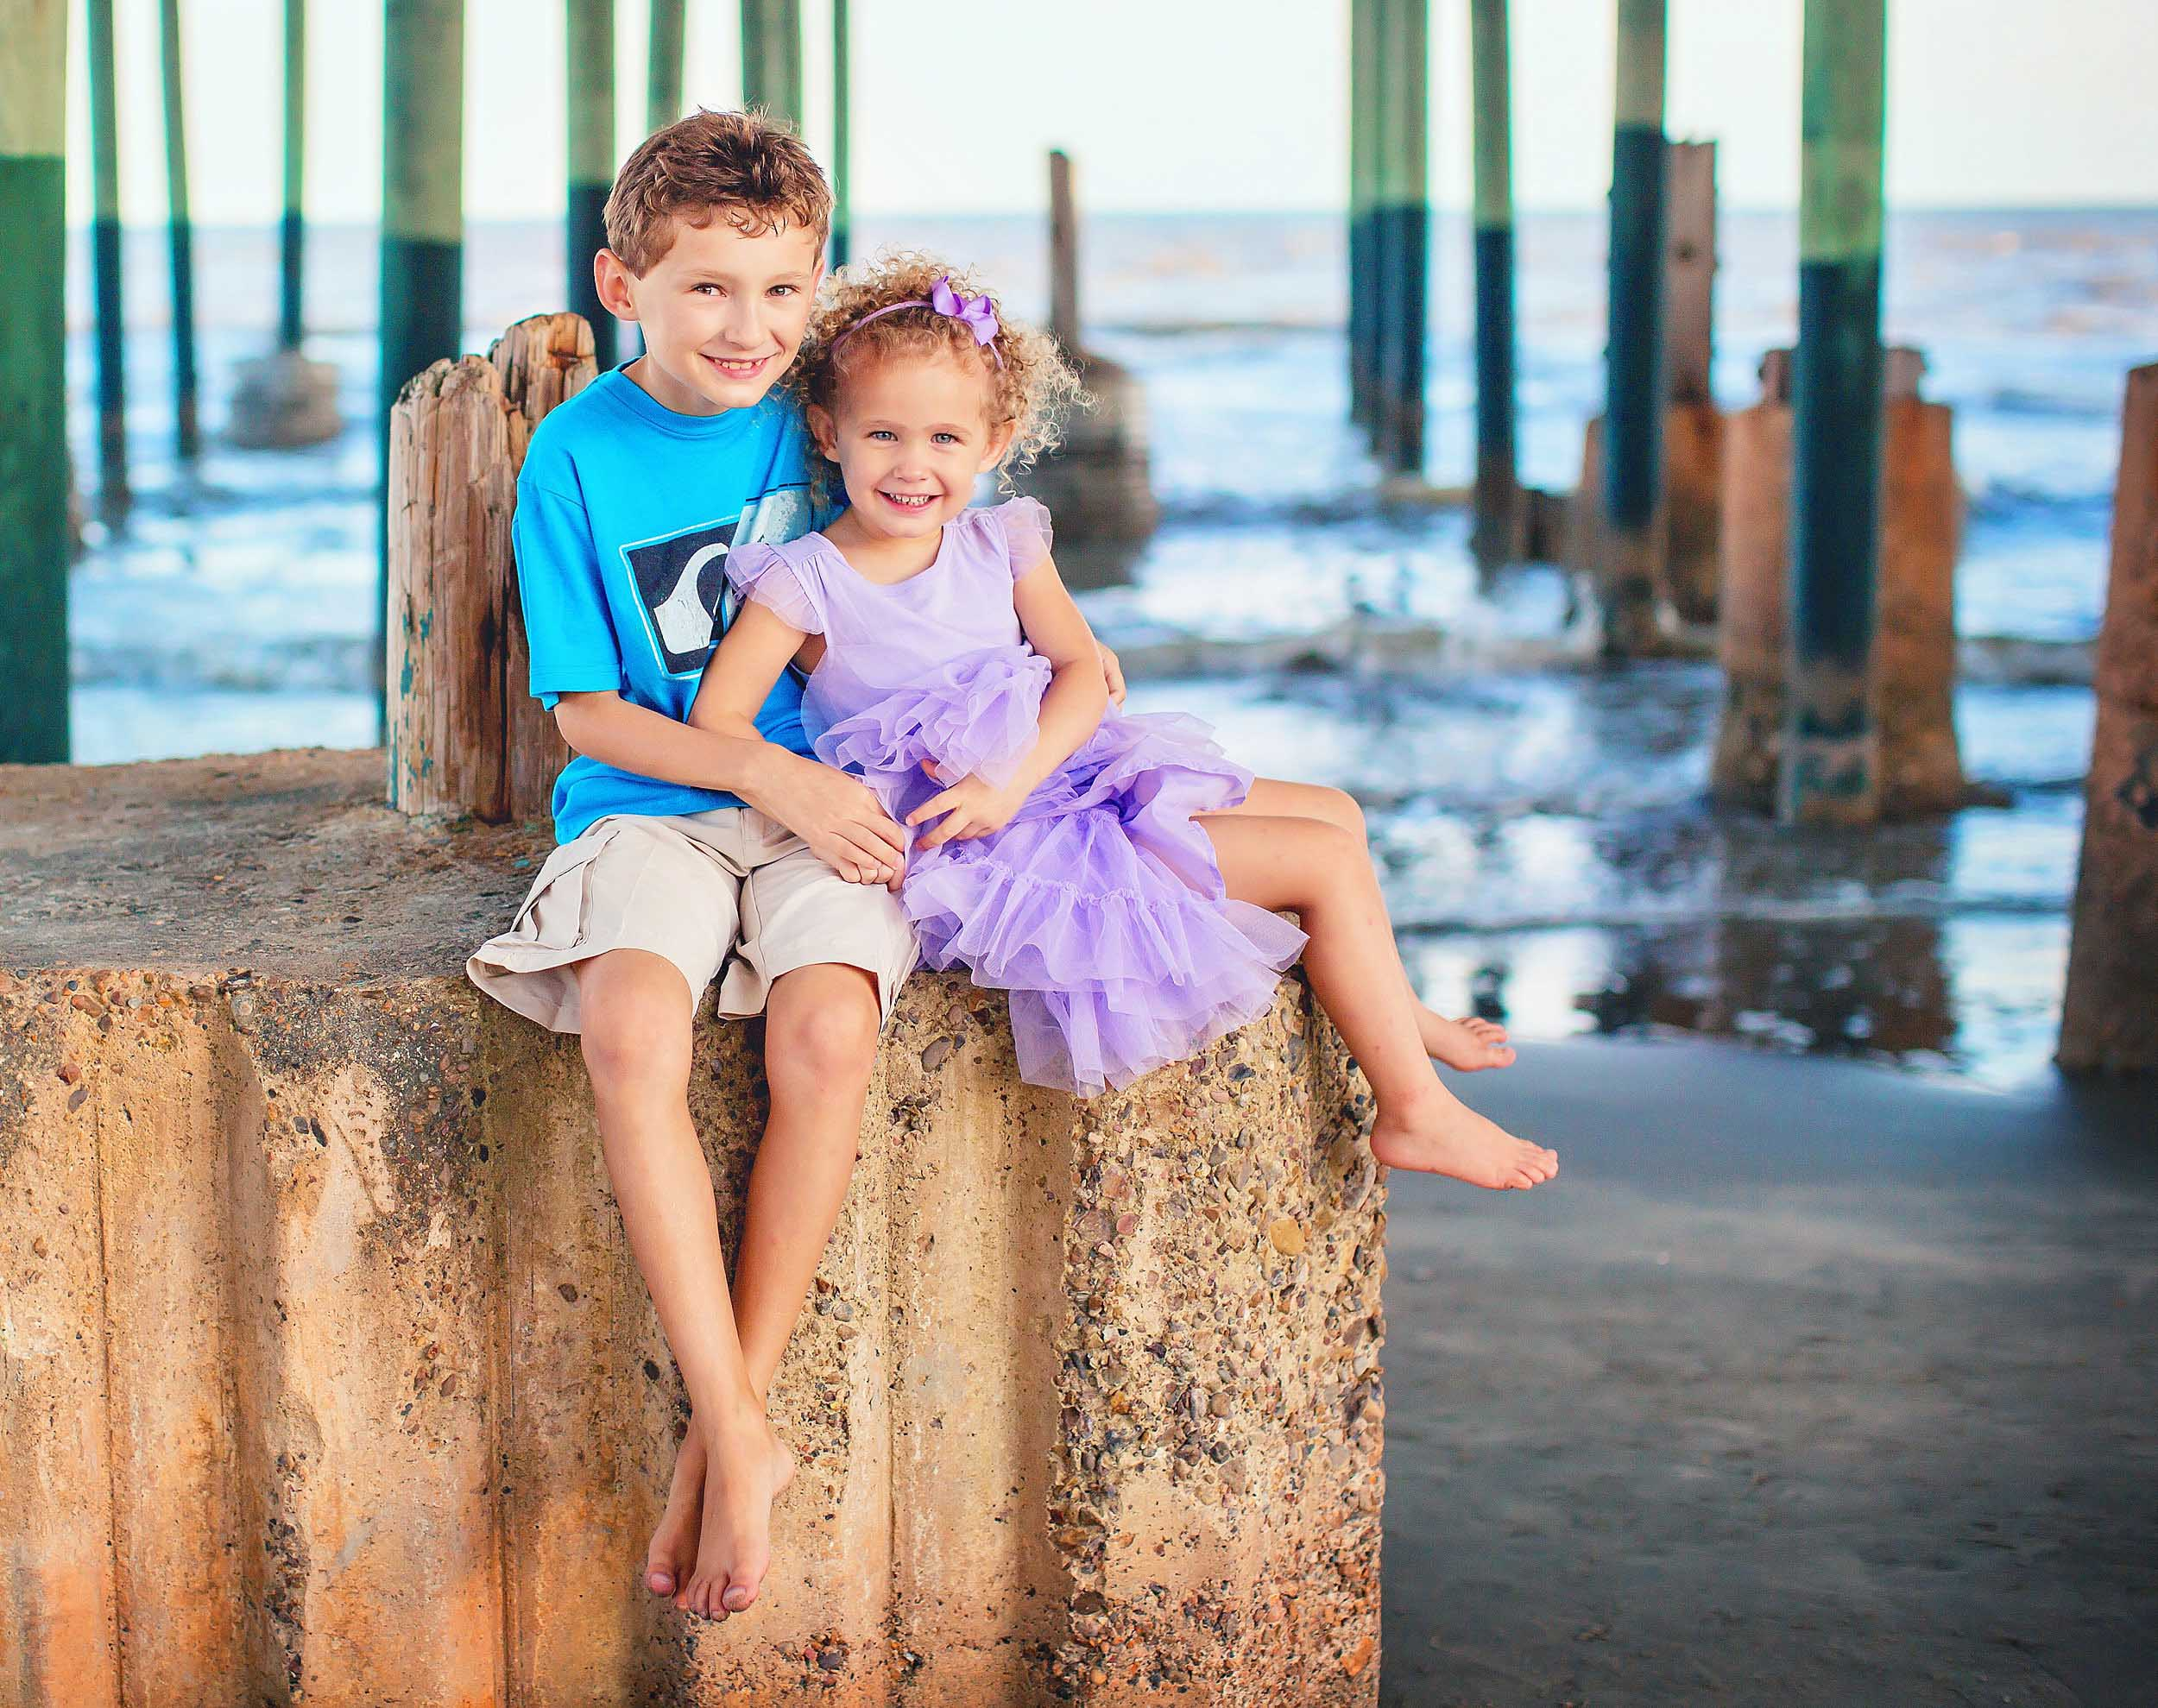 Siblings on pier in Galveston, Texas on the beach by spryART photography.